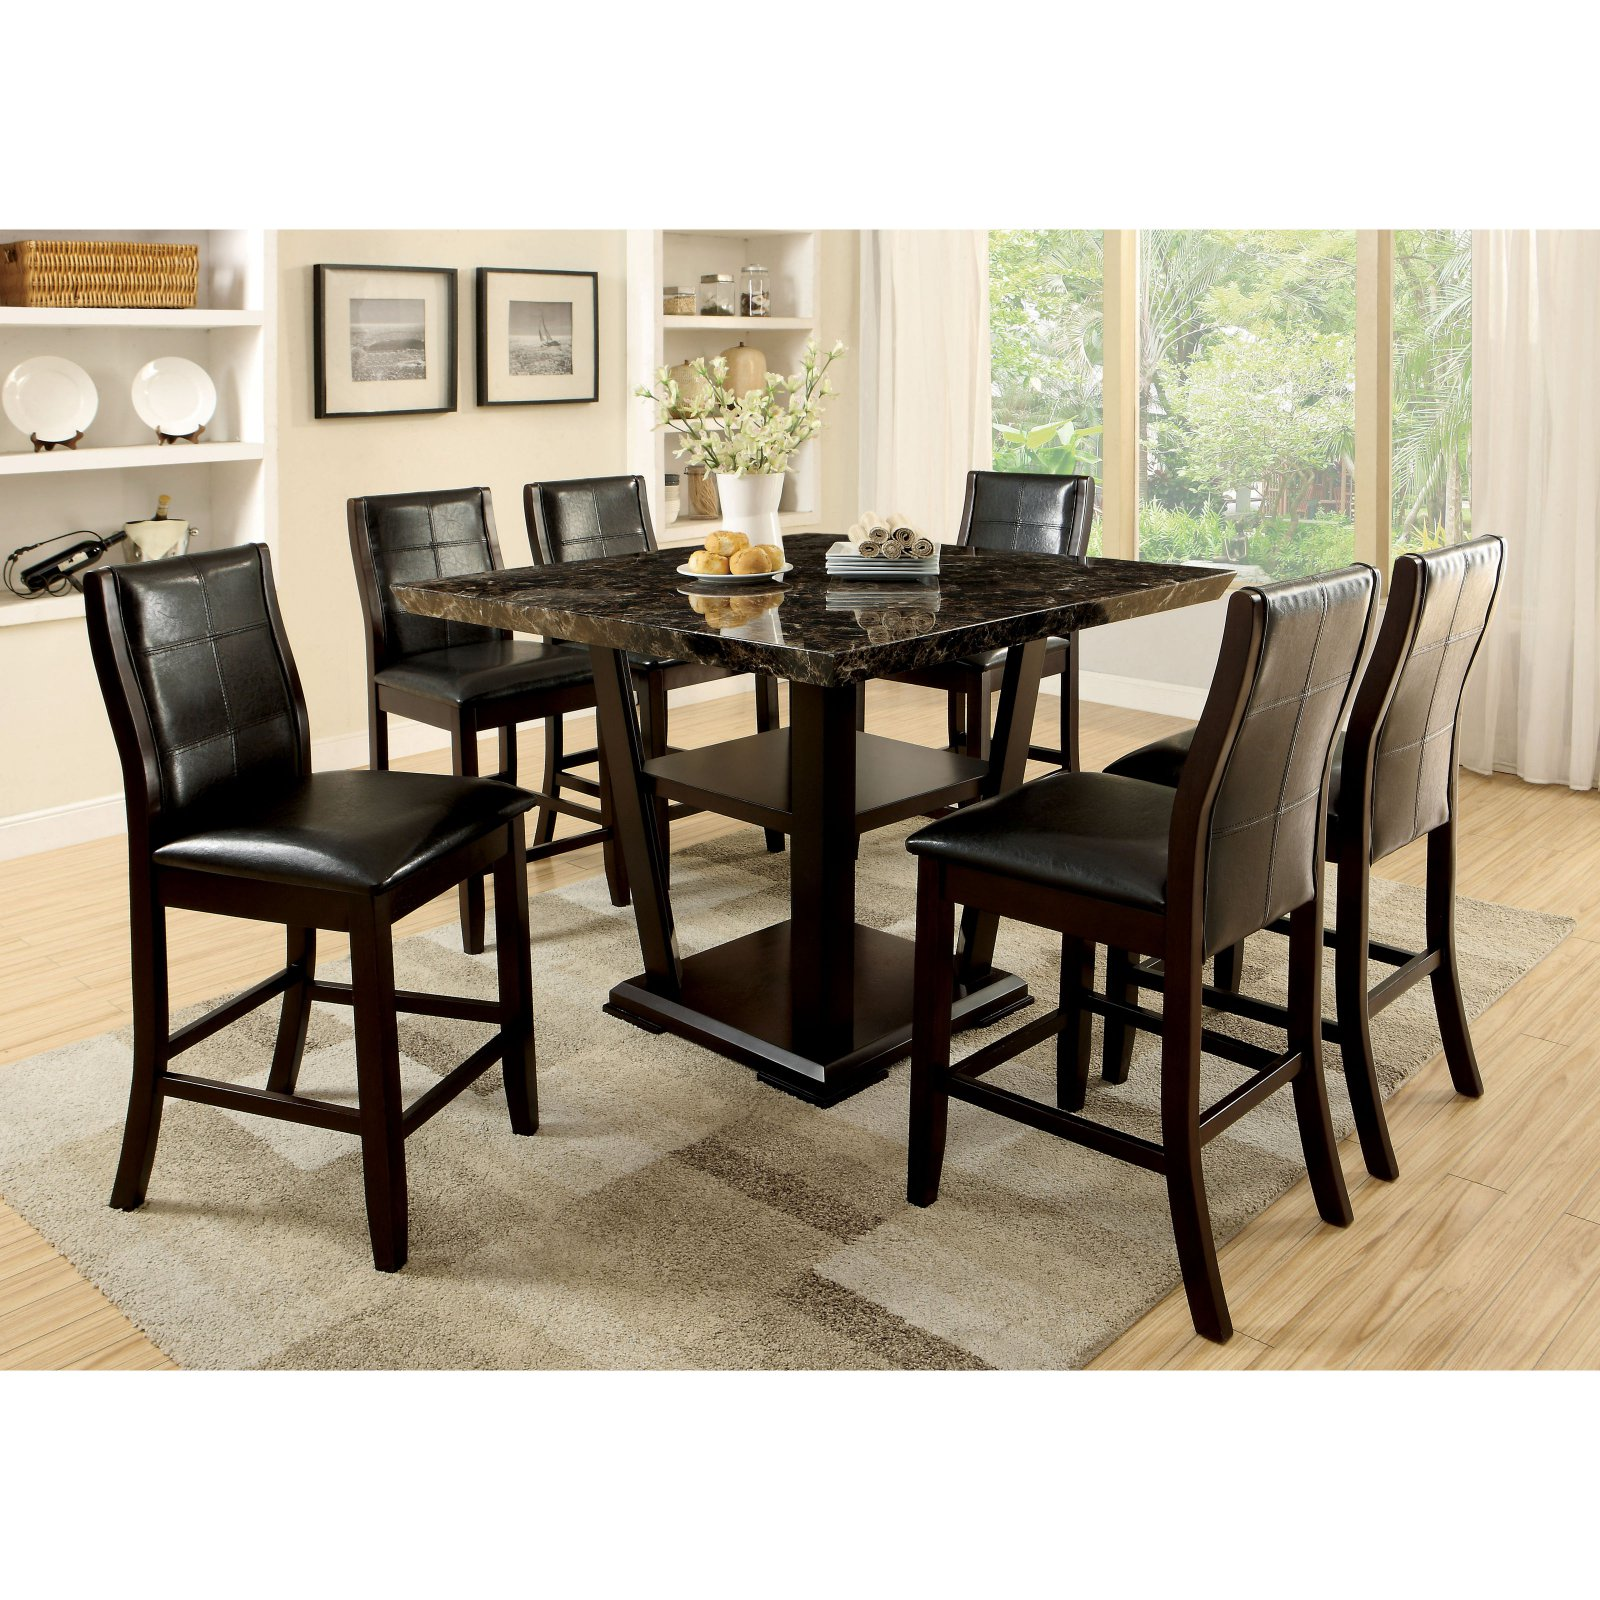 Furniture of America Newrock 7 Piece Counter Height Faux Marble Dining Table Set